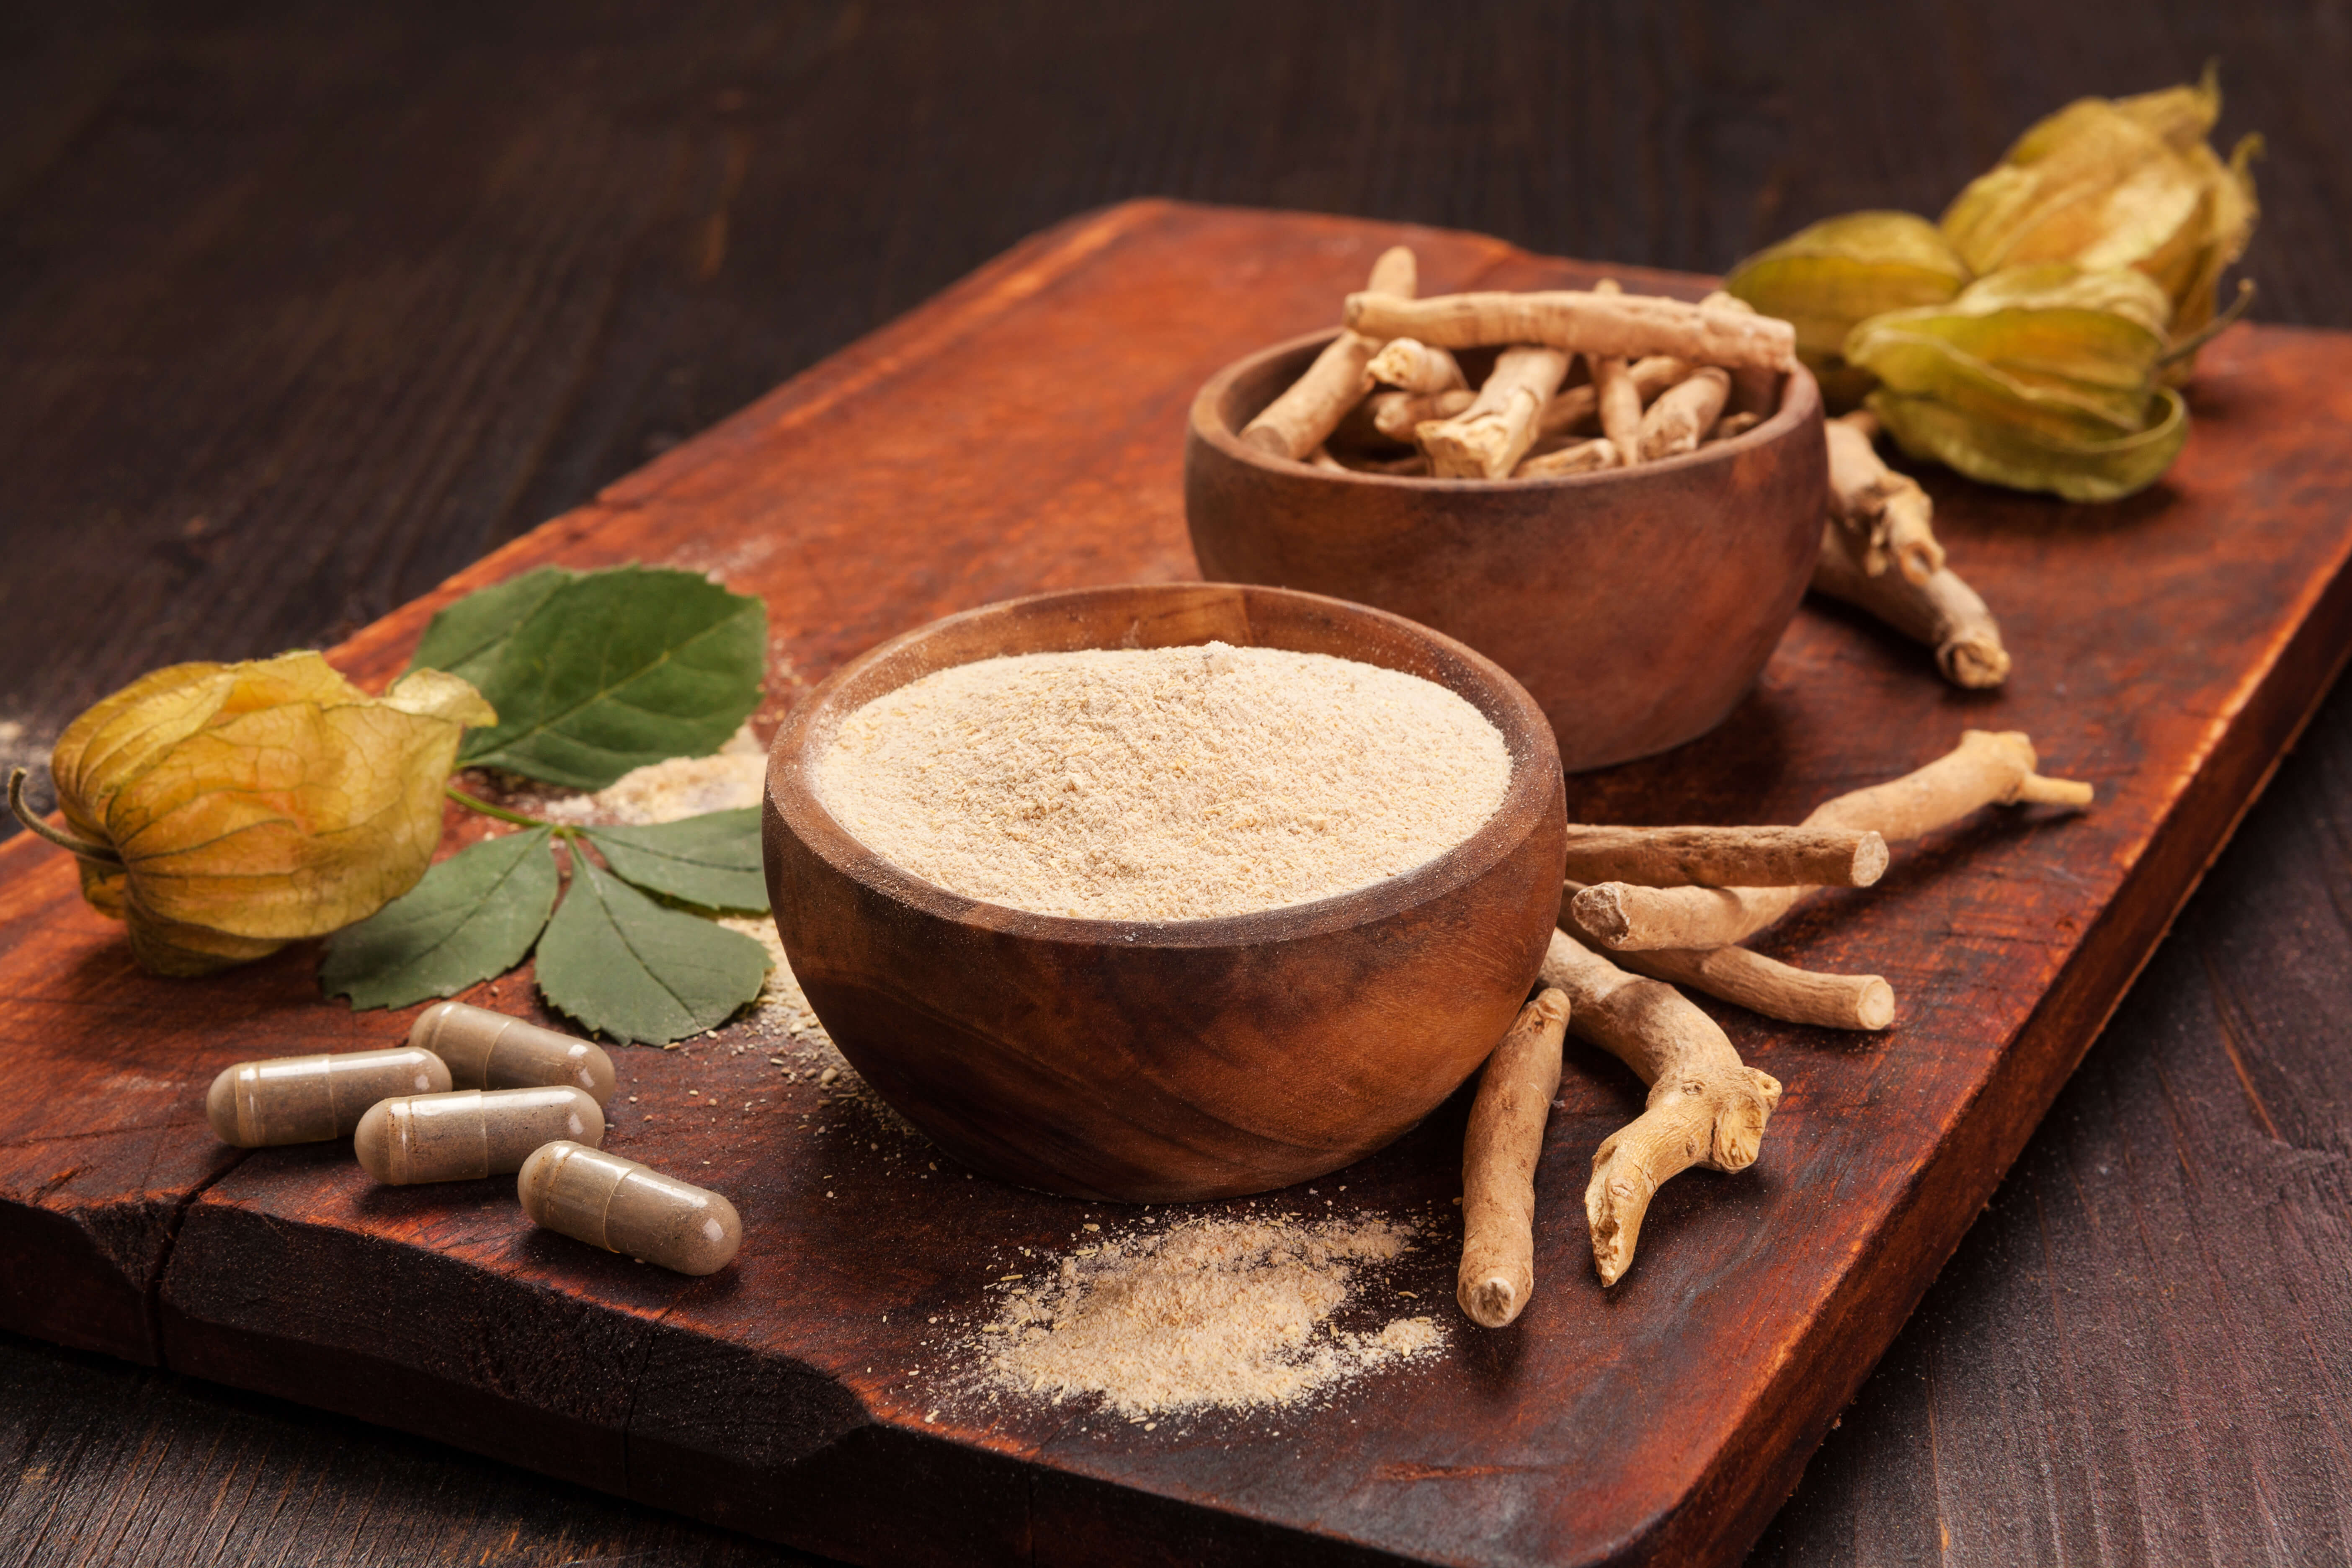 Ashwagandha for Dogs: A wooden table topped with Ashwagandha root, Ashwagandha powder, and Ashwagandha capsules.